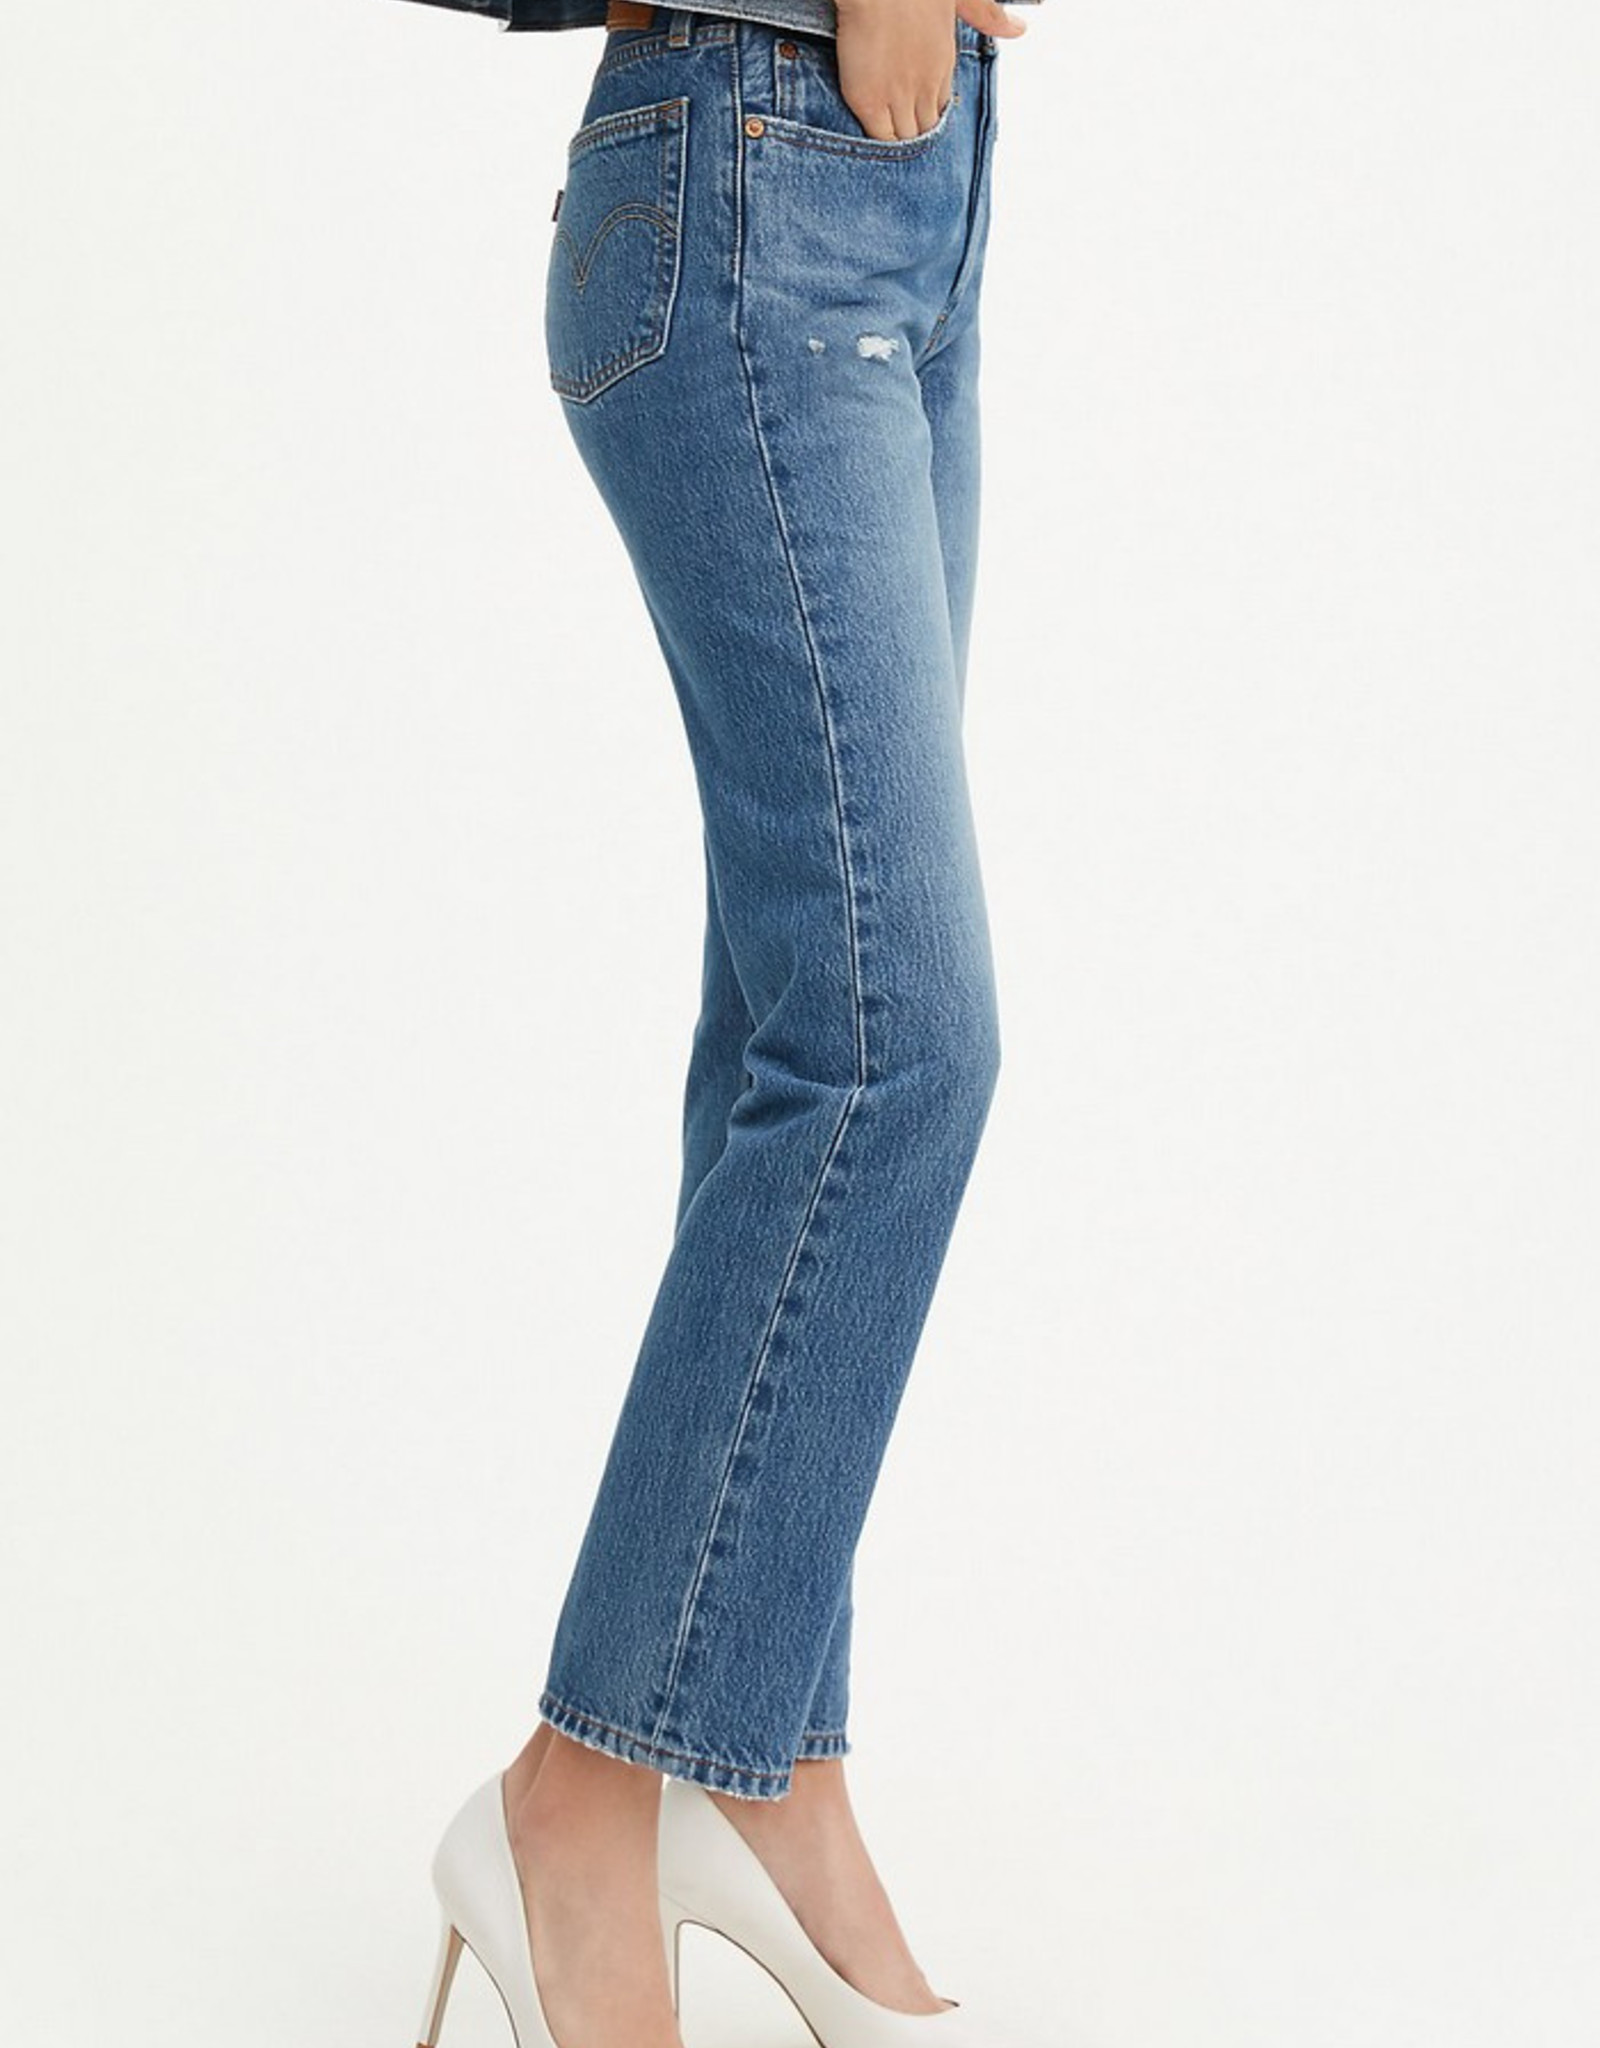 Levi's 501® Jeans For Women Athens Dark